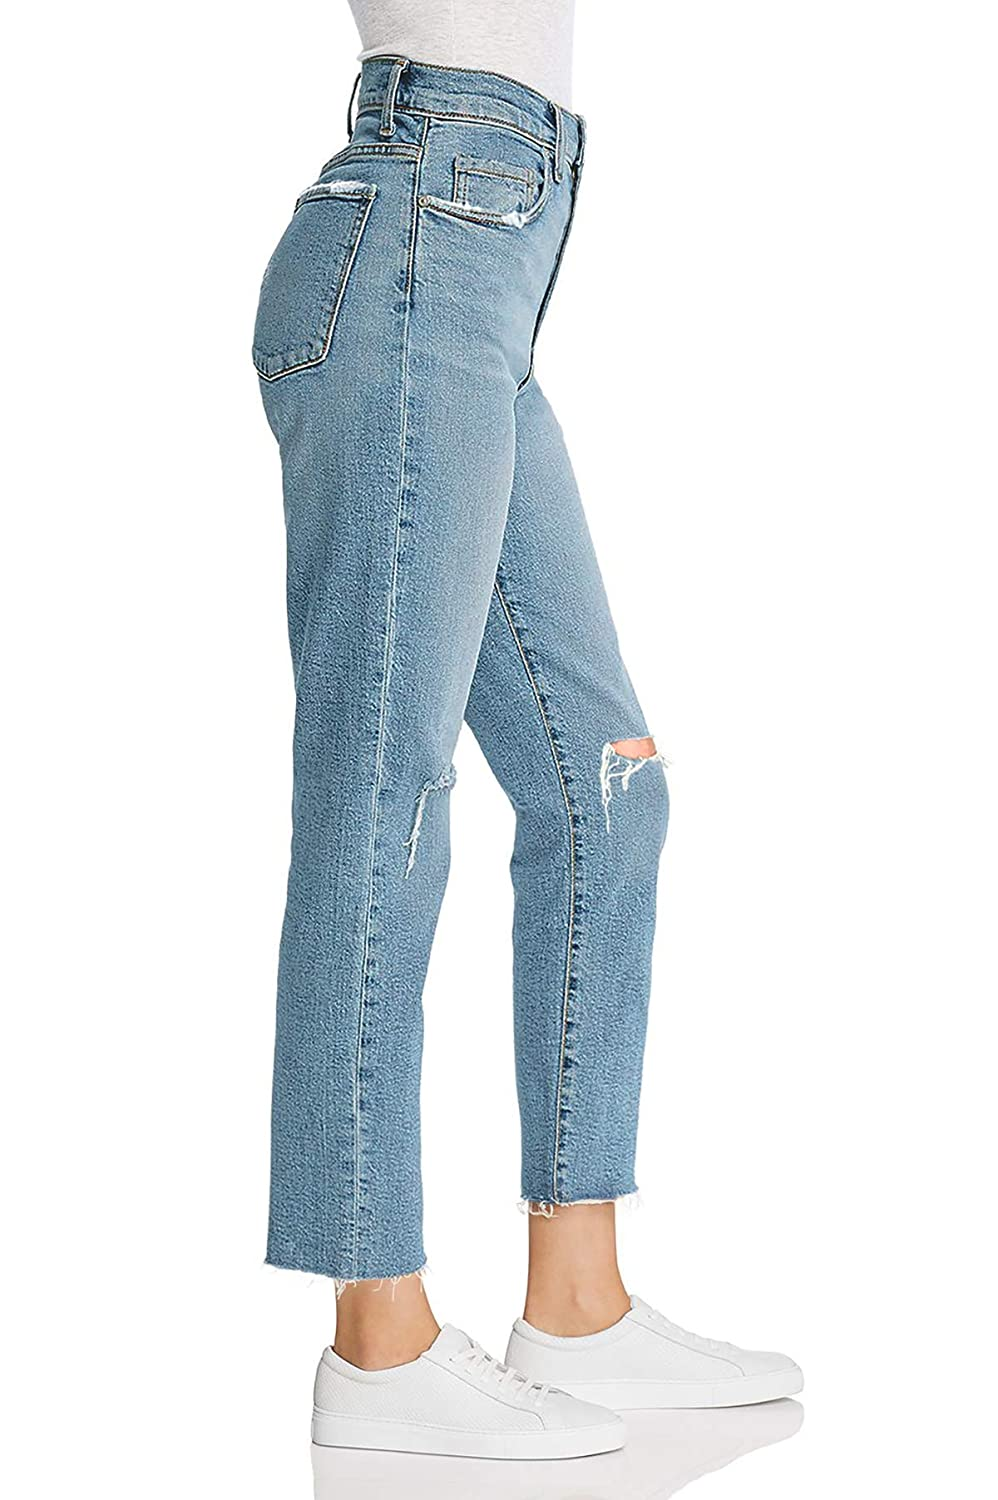 65b7f19cbc1 MONYRAY Distressed Pants High Waisted Juniors Slim Boyfriend Jeans Women  Knee Ripped Frayed Hem at Amazon Women's Jeans store